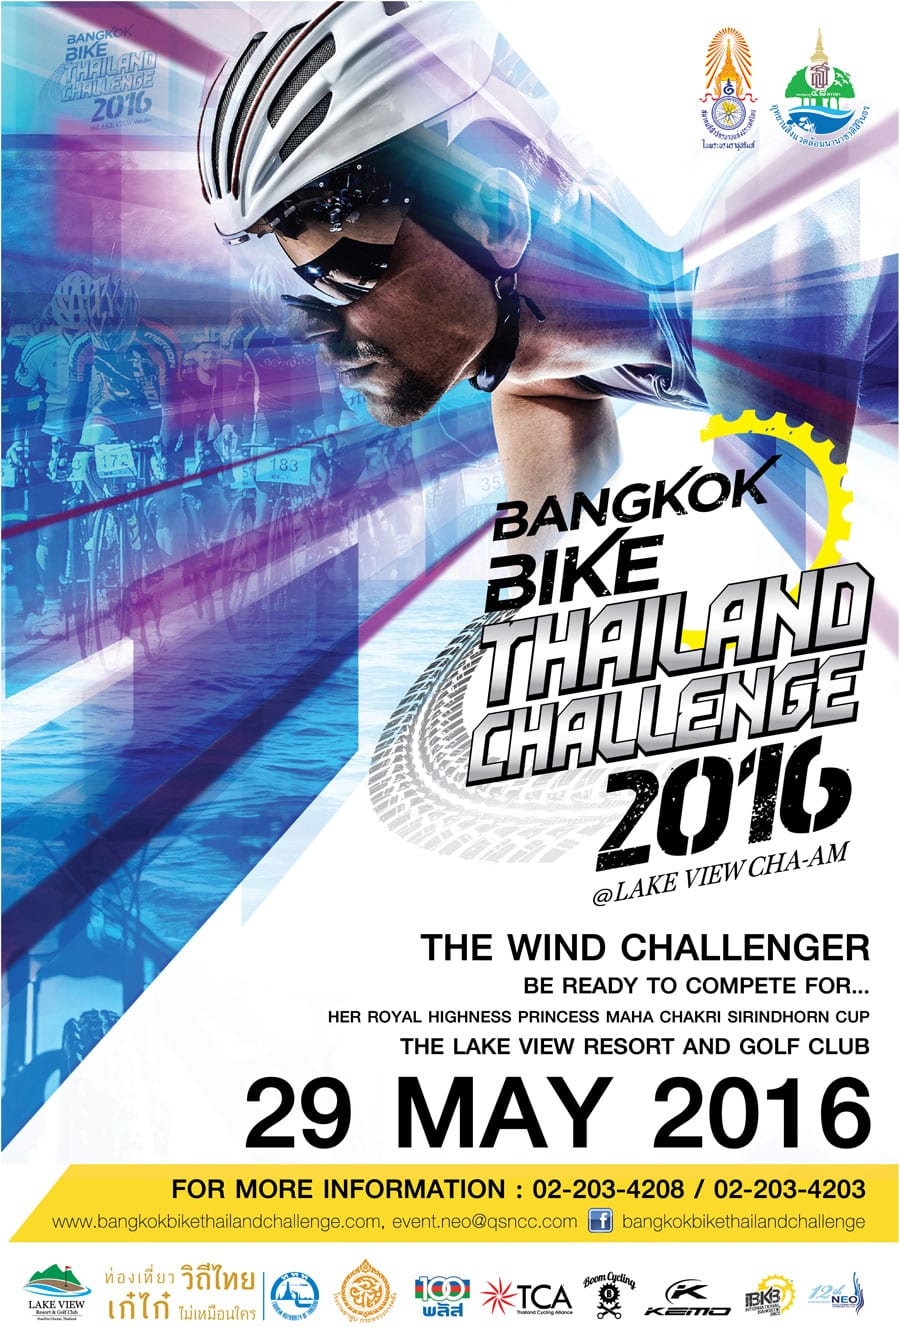 Bangkok Bike Thailand Challenge 2016@ Lake View Cha Am